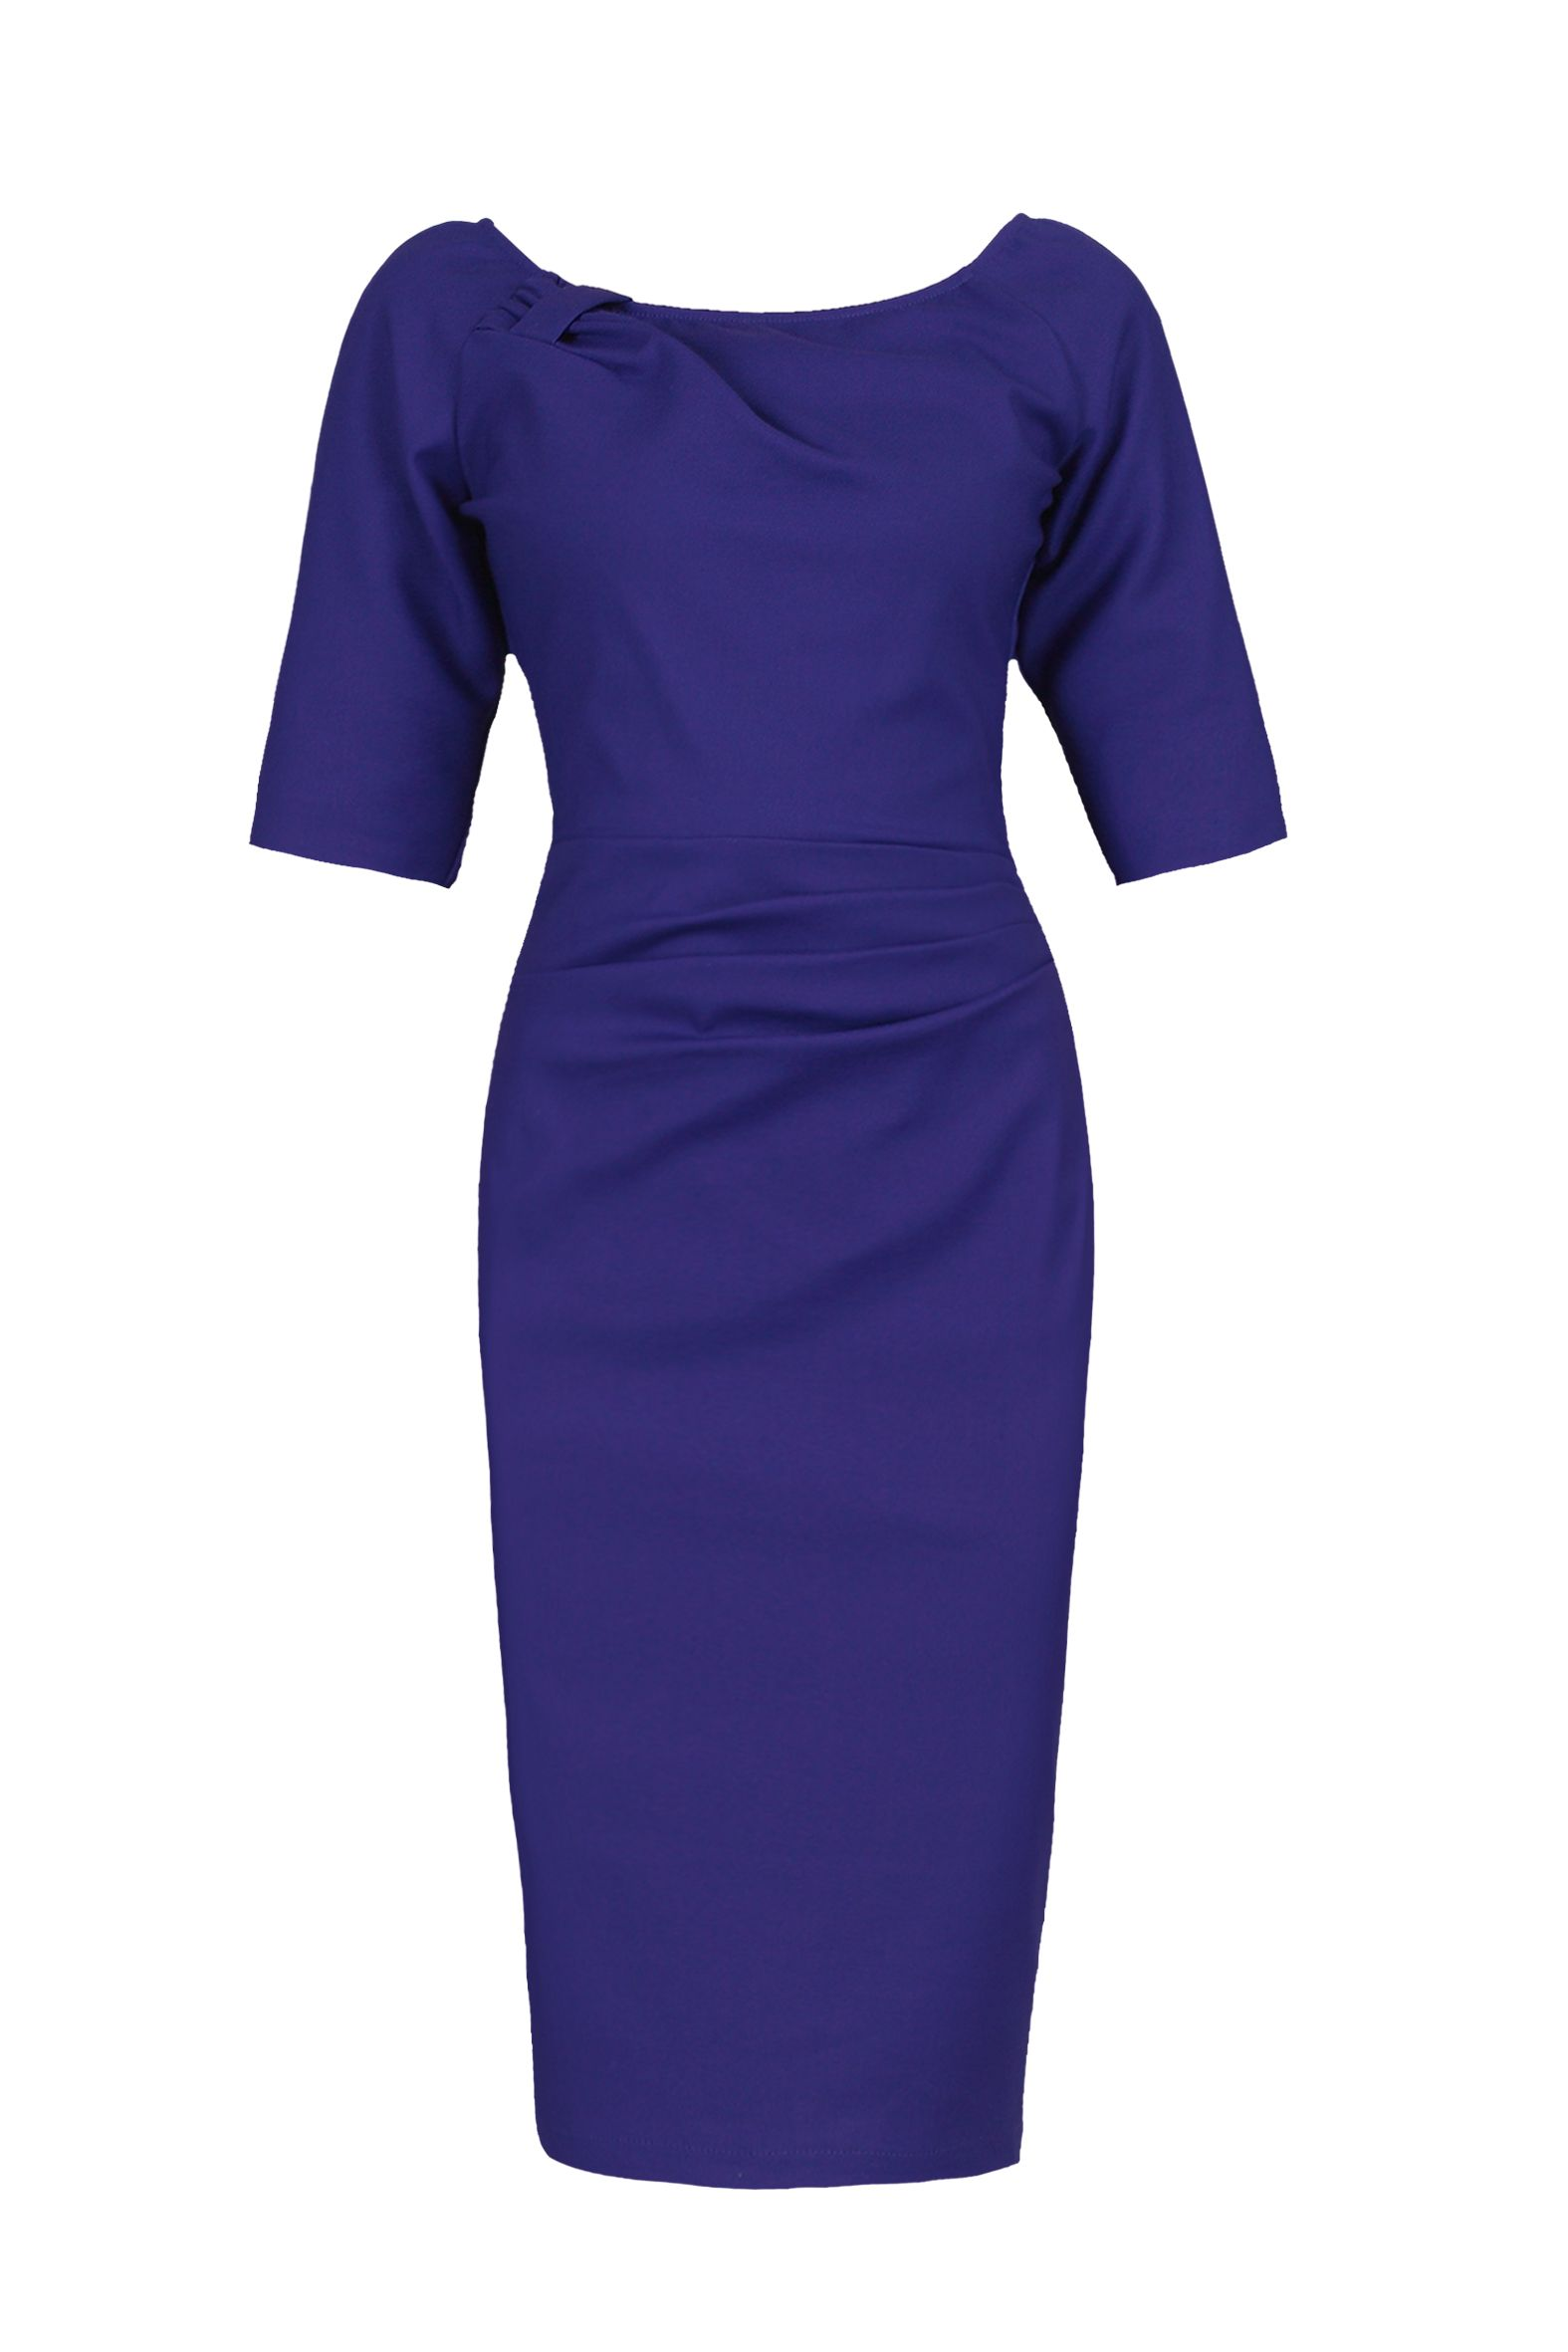 Jolie Moi 1/2 Sleeve Ruched Wiggle Dress, Royal Blue